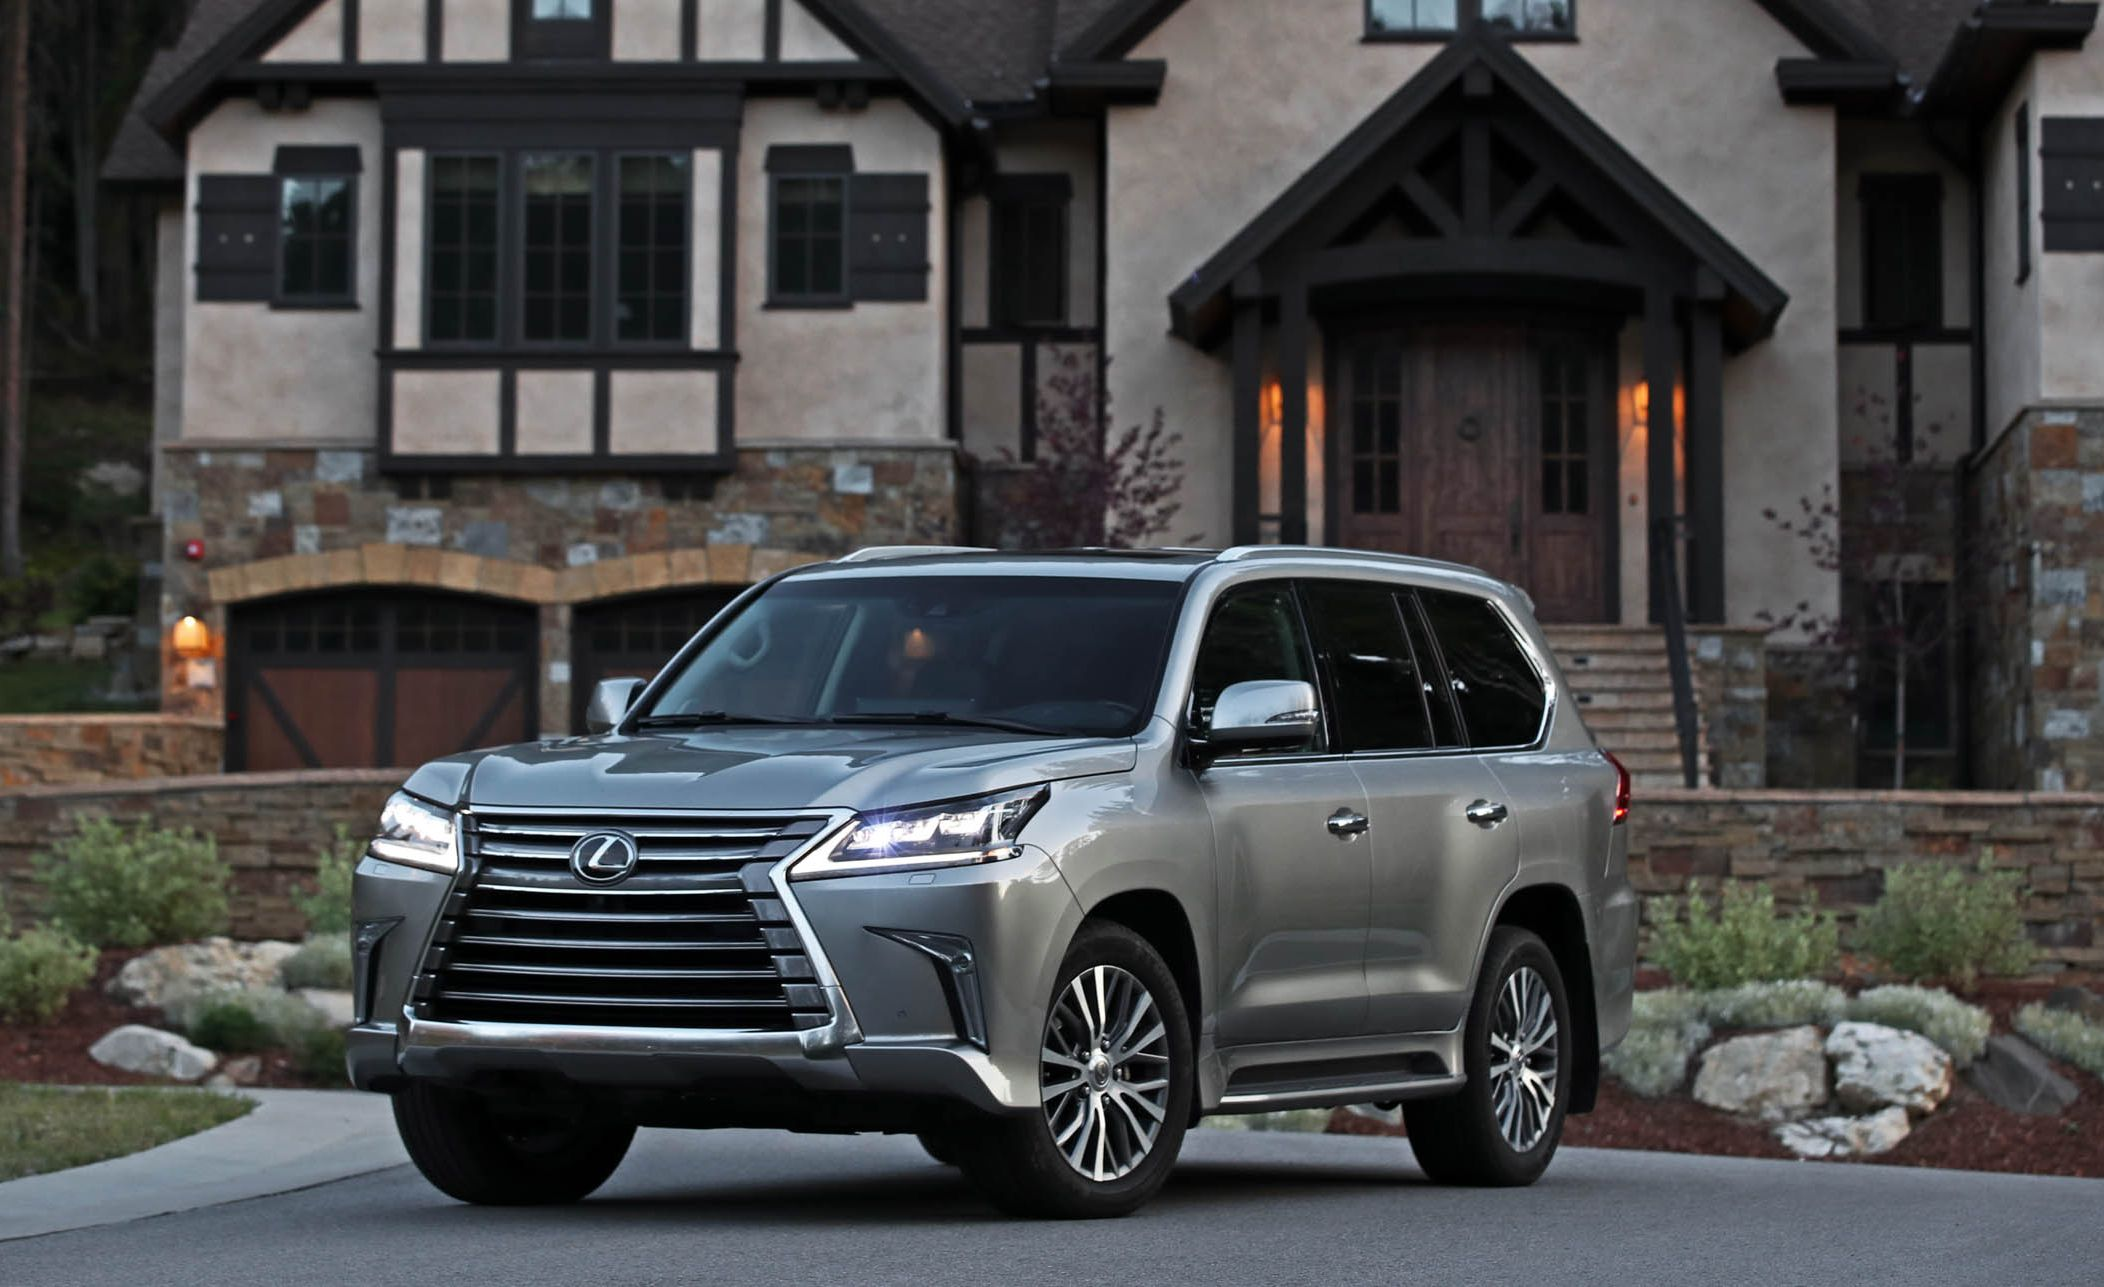 Lexus LX570 (2012–present) If there's one vehicle that combines everything wrong with Toyota and Lexus design over the last 30 years, it's the current LX570 . The luxurious Lexus version of the venerable Toyota Land Cruiser is now in its third generation and has been homely ever since it debuted in 2008.